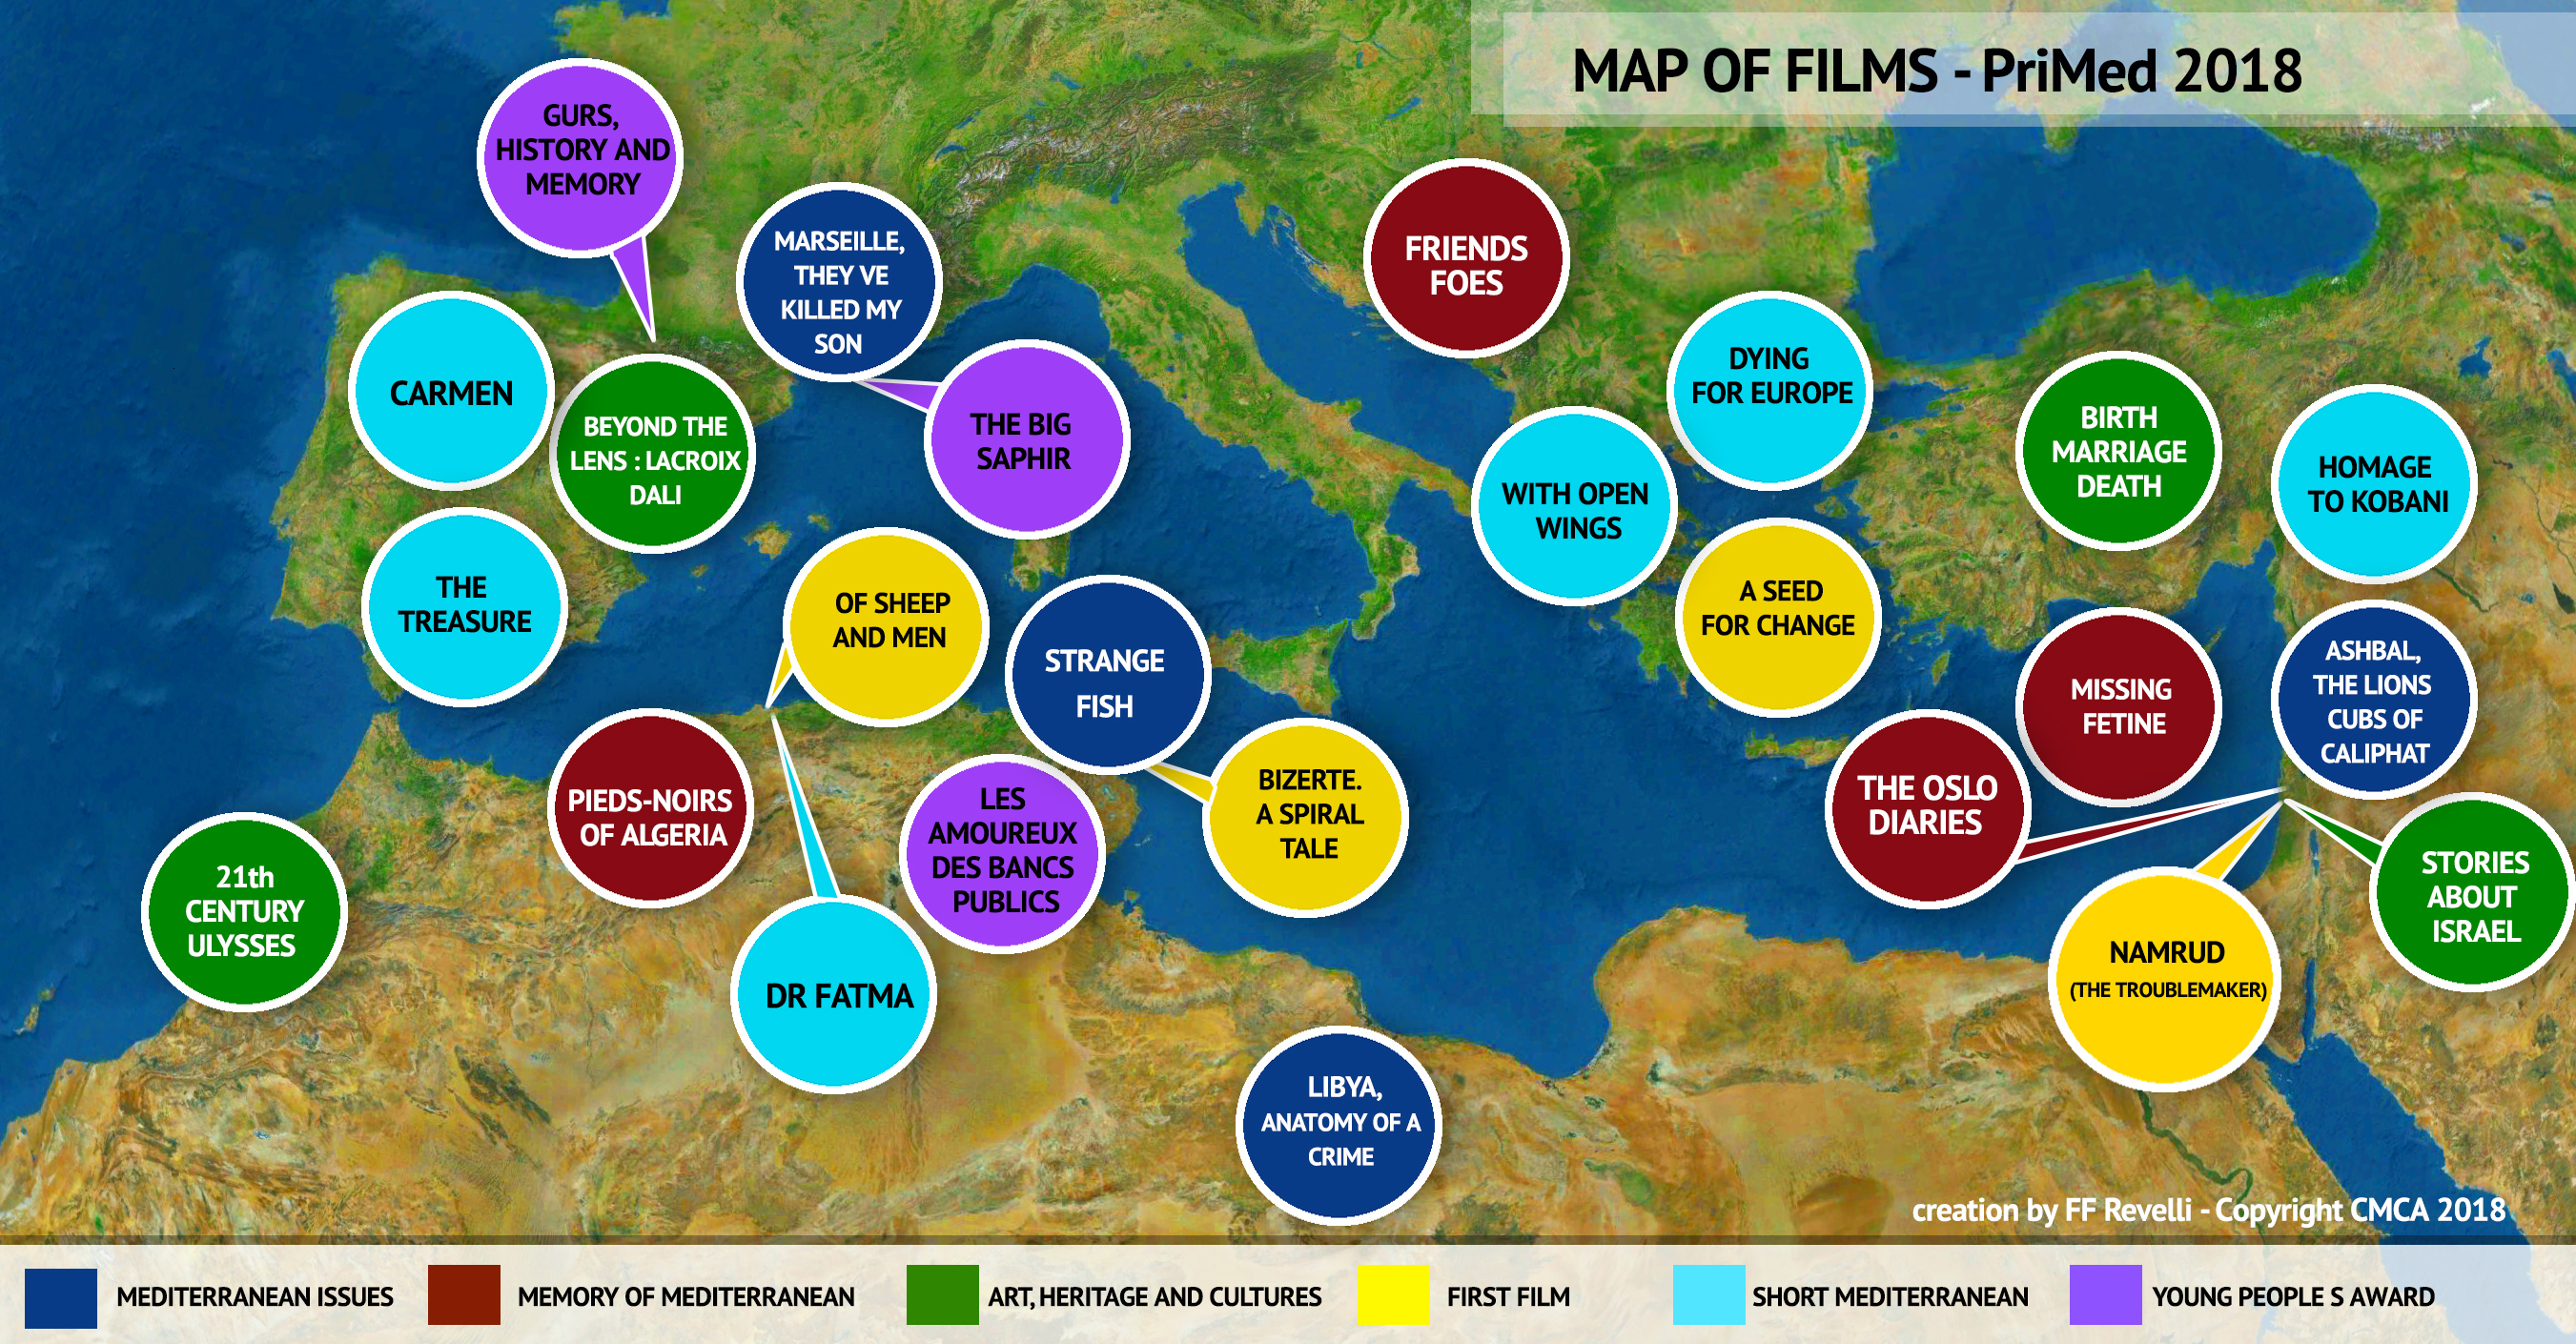 THE MAP OF SELECTED FILMS OF PriMed 2018 - PriMed